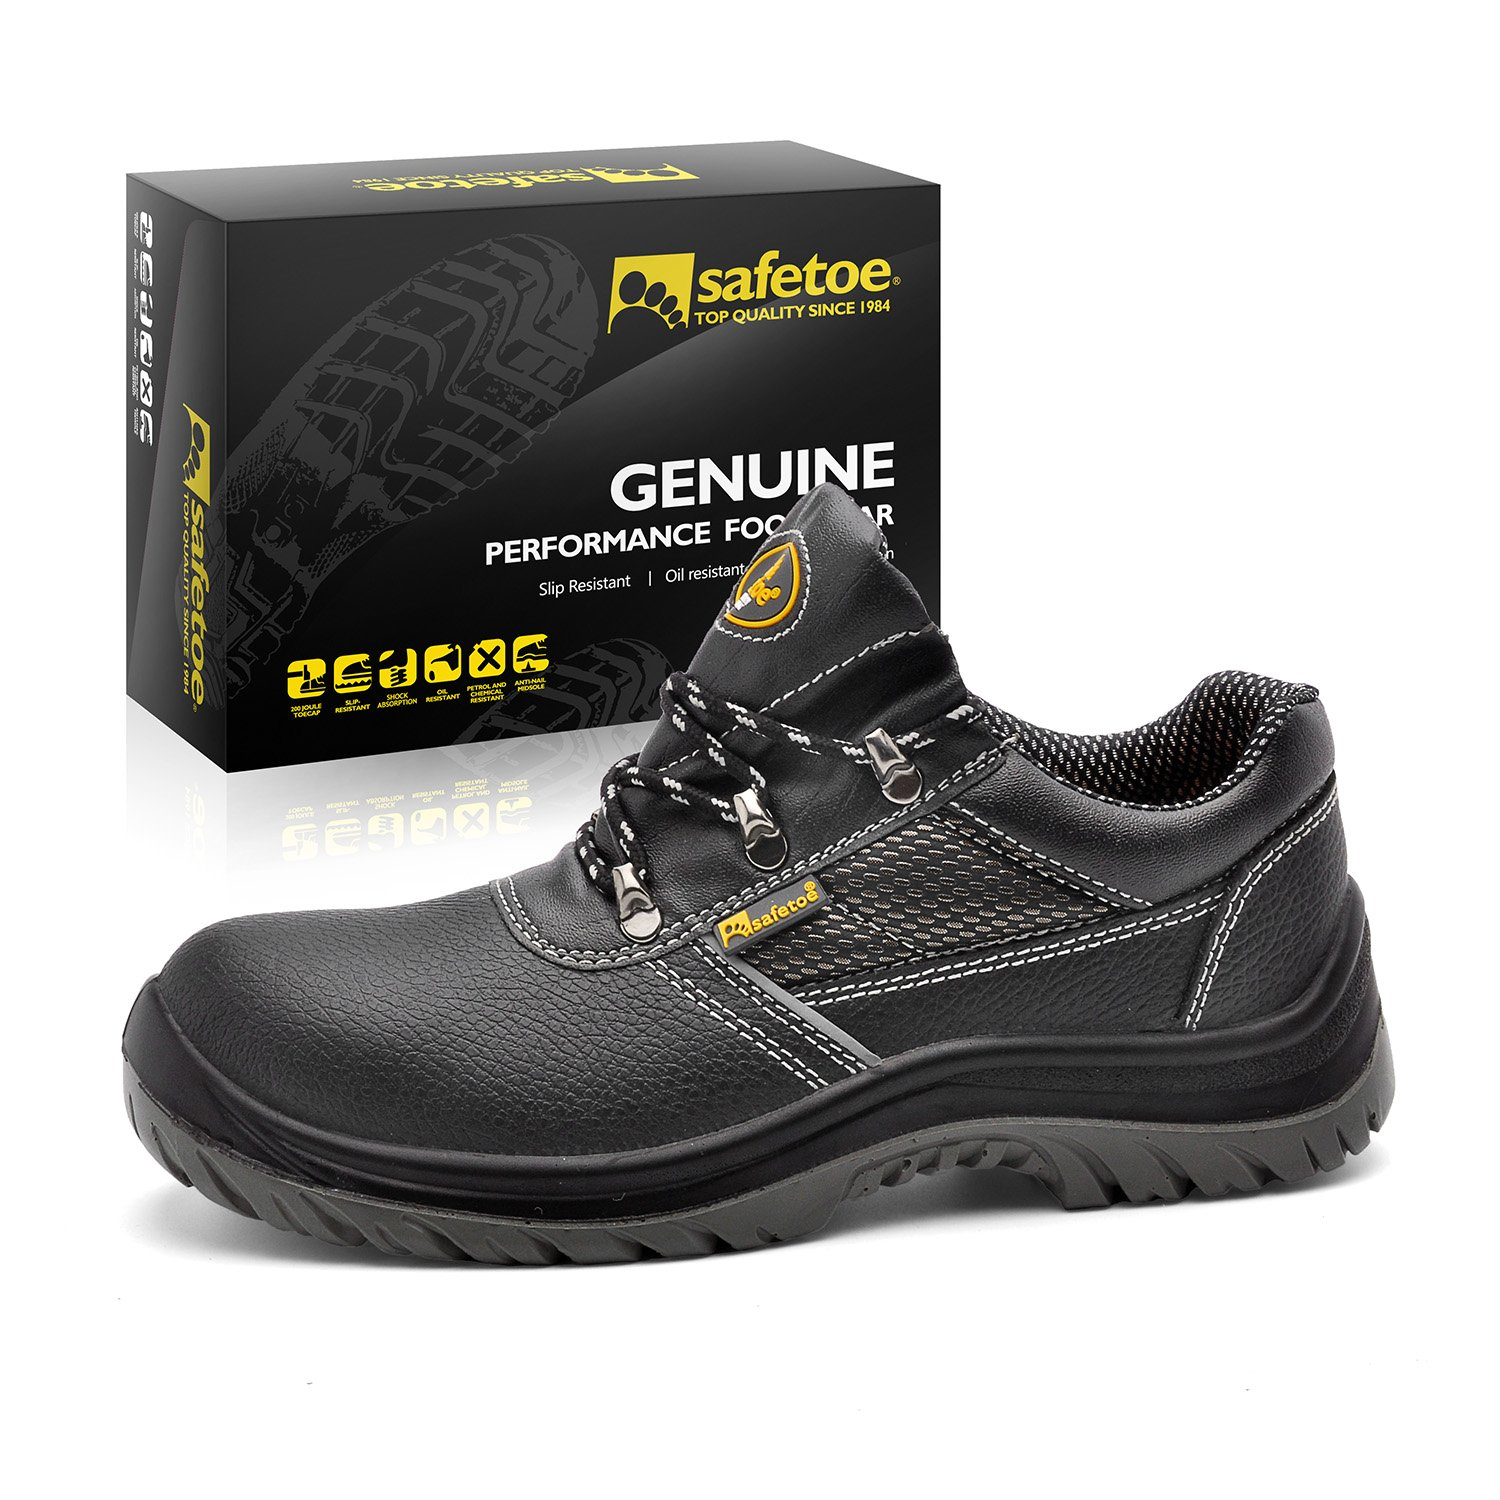 SAFETOE Men Steel Toe Cap Safety Shoes - L7222 Water Resistant Lightweight Leather Work Boots